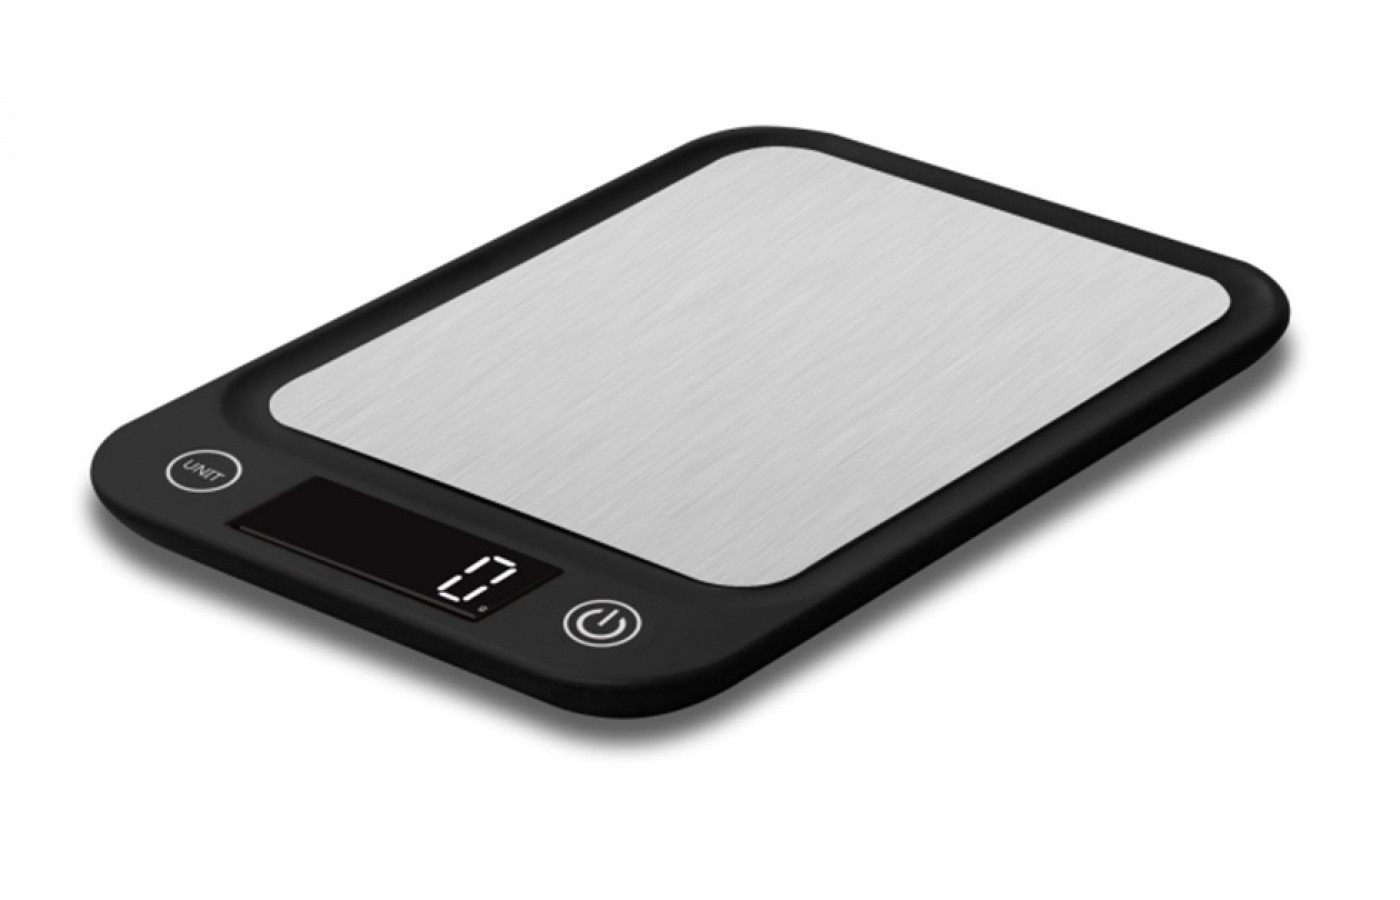 Digital kitchen scale stainless steel black